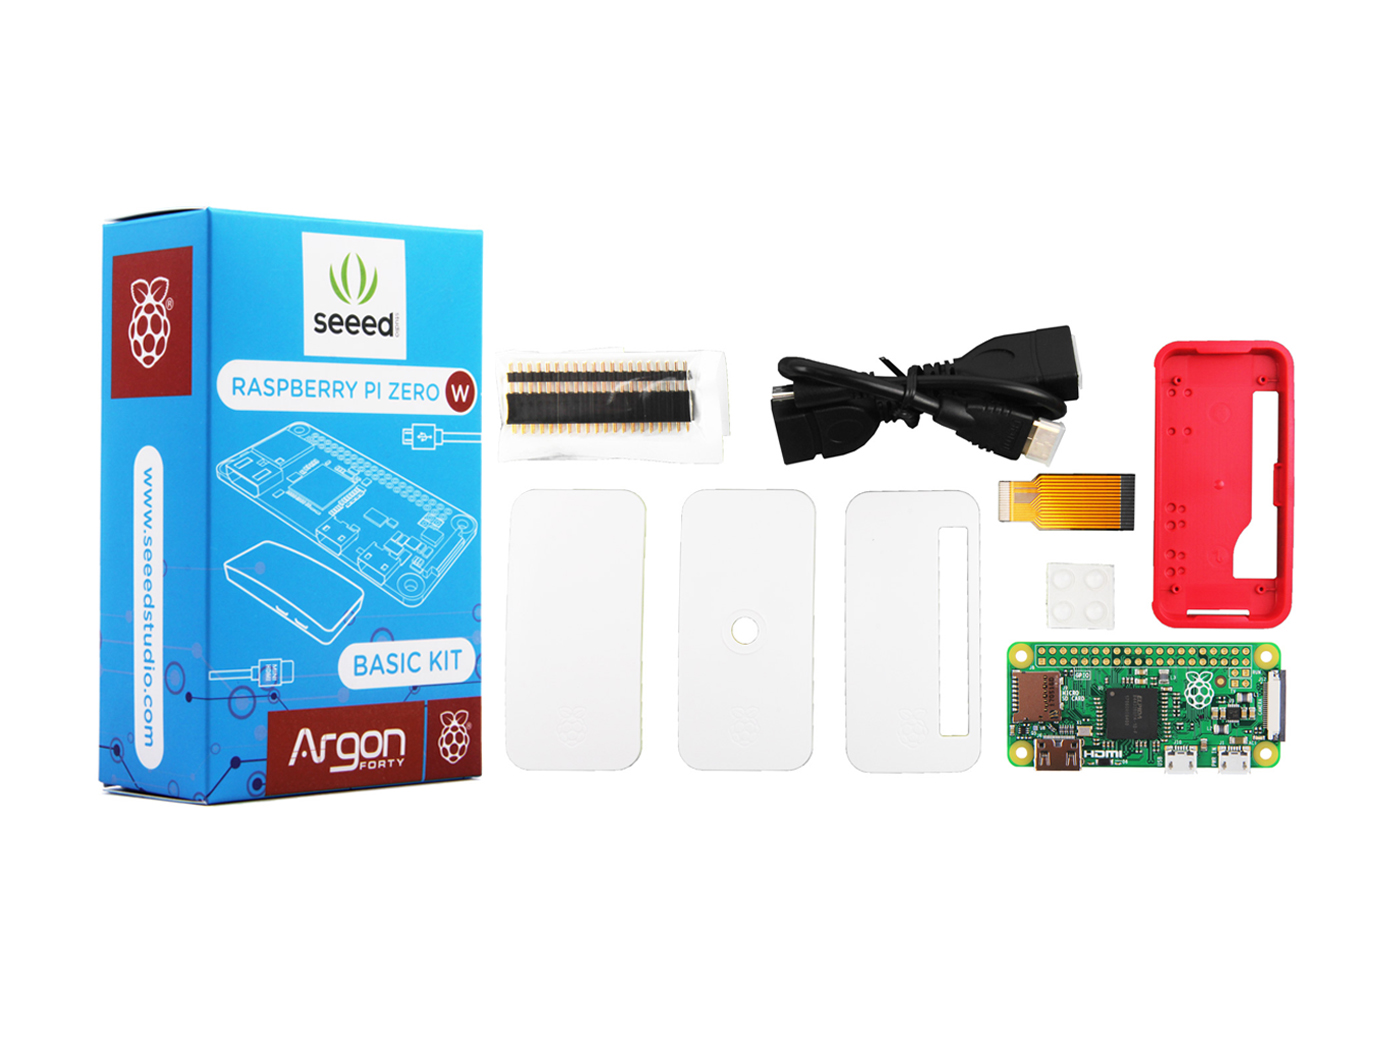 Seeedstudio Raspberry Pi Zero W Basic Kit